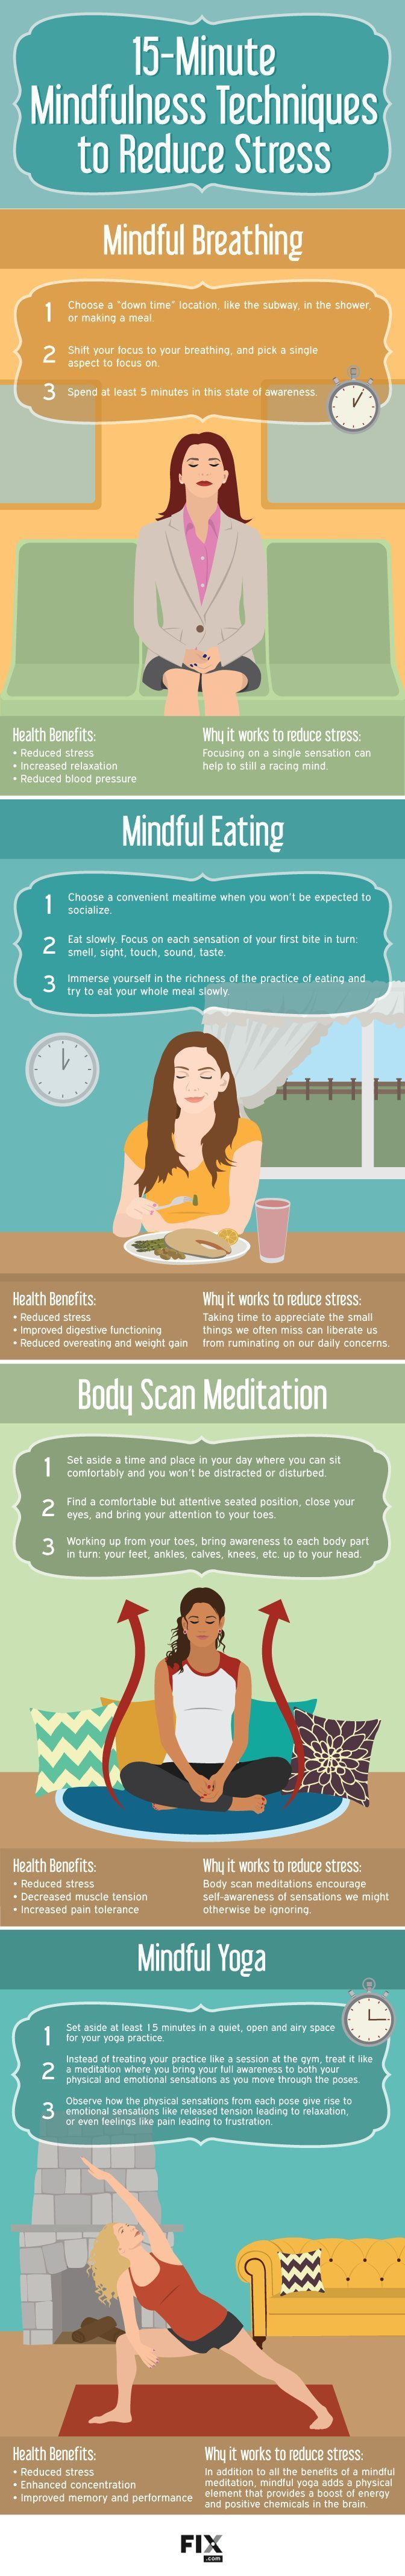 How to use mindfulness to reduce stress in just 15 minutes, using four simple…